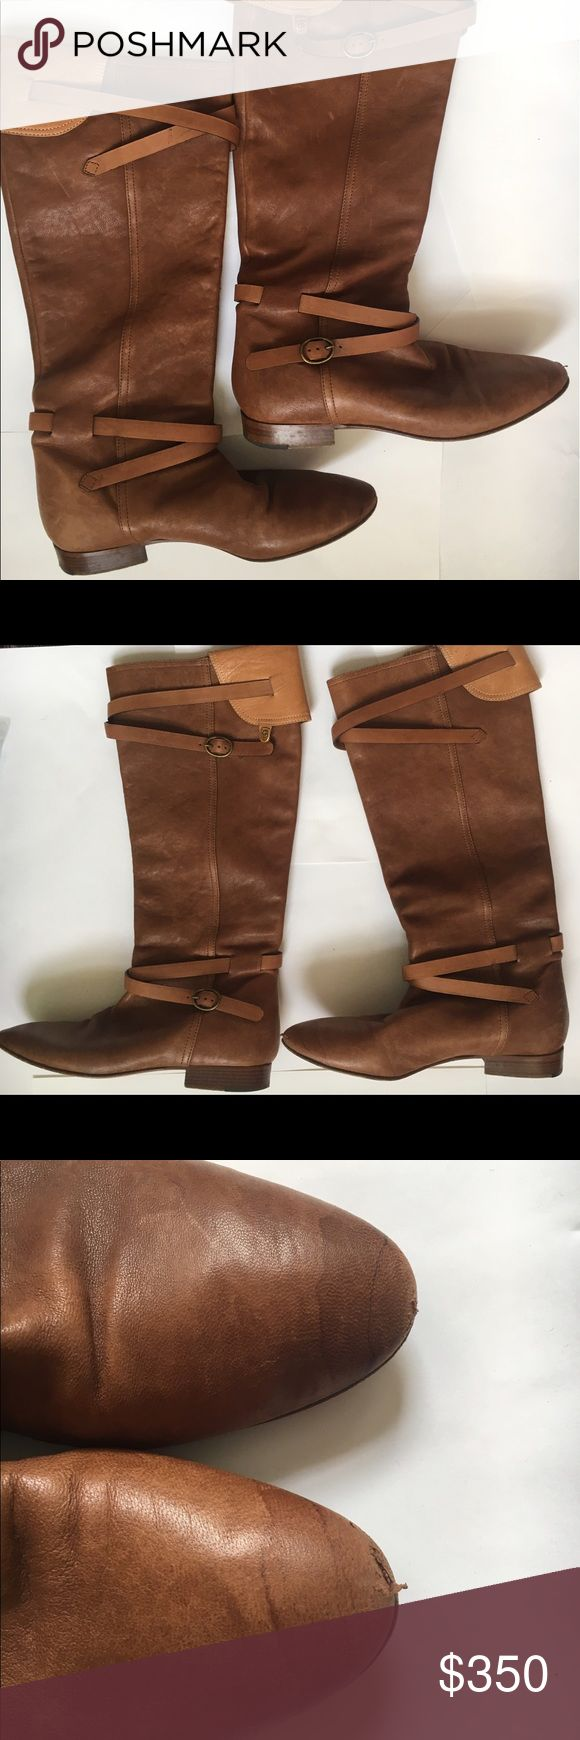 Chloe Brown Strap Buckle Knee High Boots Thee have been worn quite a bit. Leather is very soft, pull on design. Mild scratching and scuffing throughout (see photo). Normal wear and tear for pre-owned boots worn around NYC. Please see photo of toes - slight water mark and nicks at toes. DOES NOT INCLUDE ORIGINAL PACKAGING. Chloe Shoes